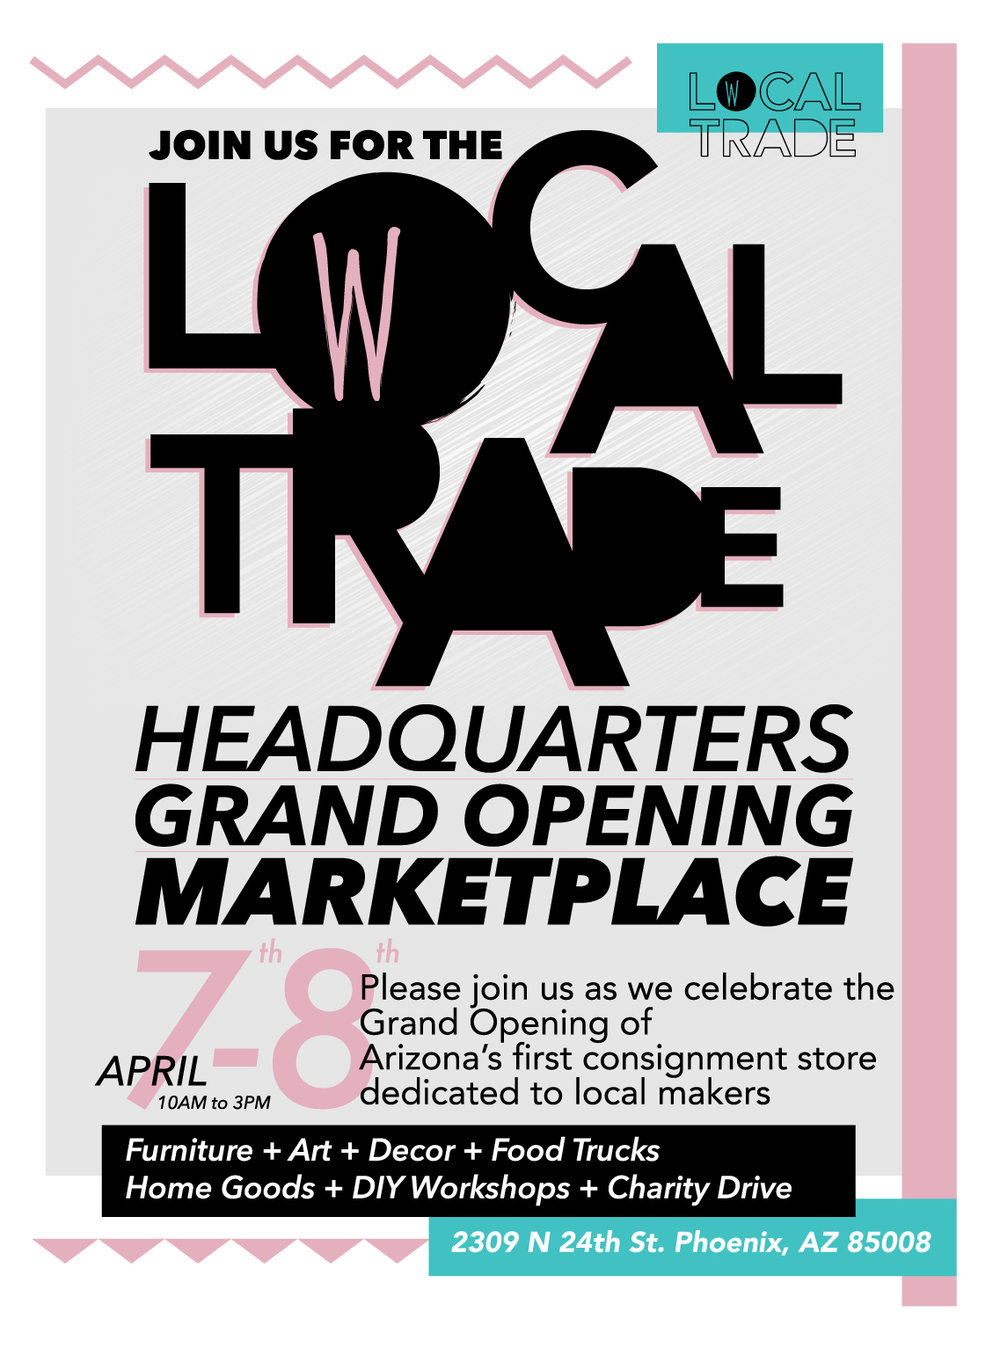 Local_Trade_Grand_Opening.jpg